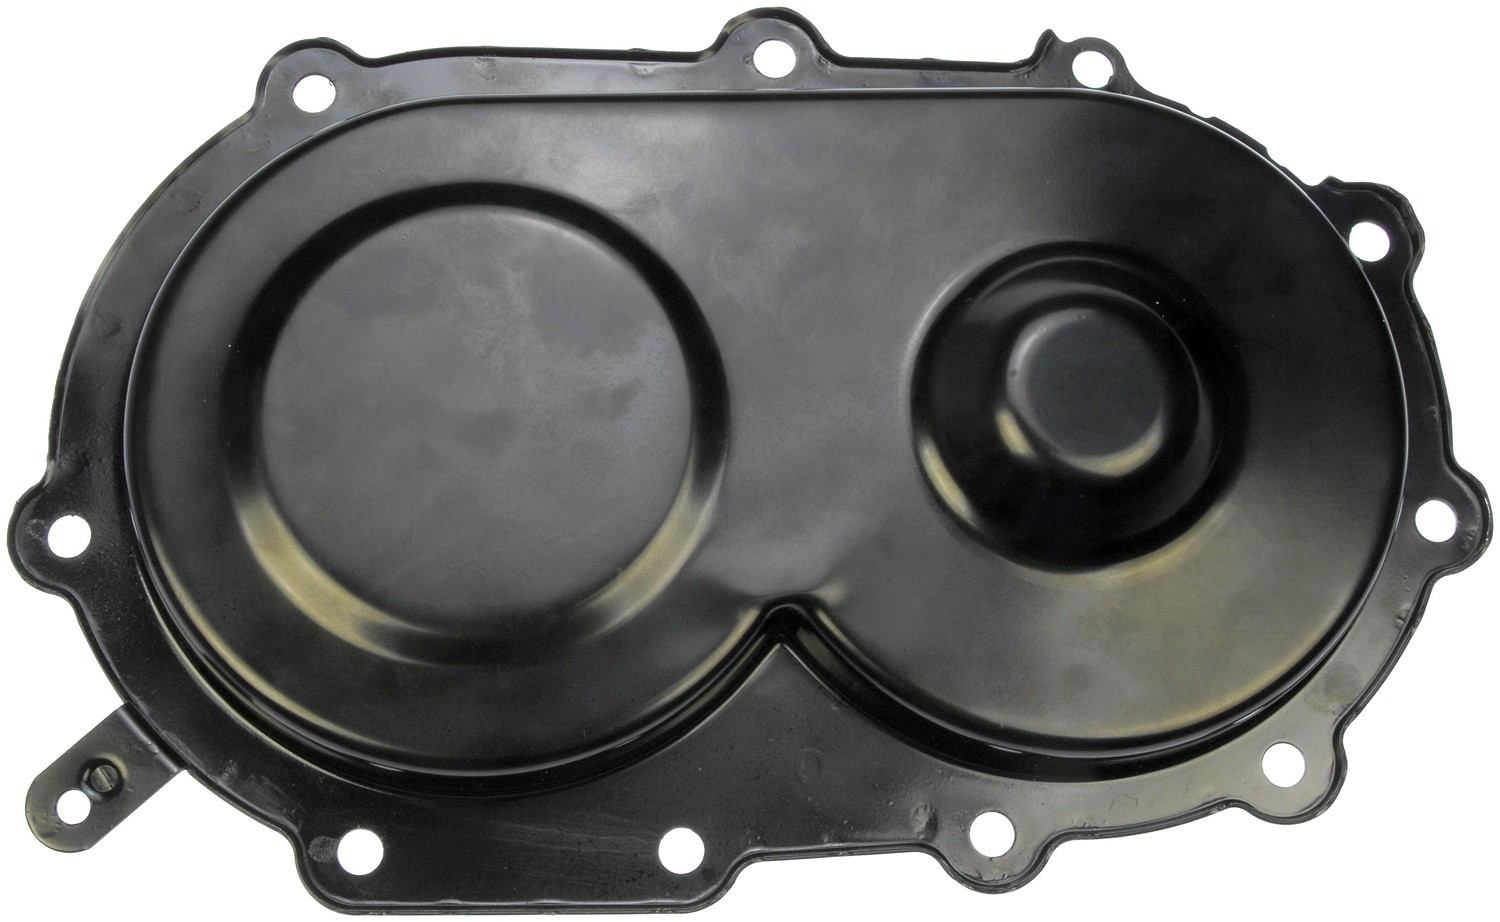 DORMAN OE SOLUTIONS - Automatic Transmission Case Cover - DRE 265-820